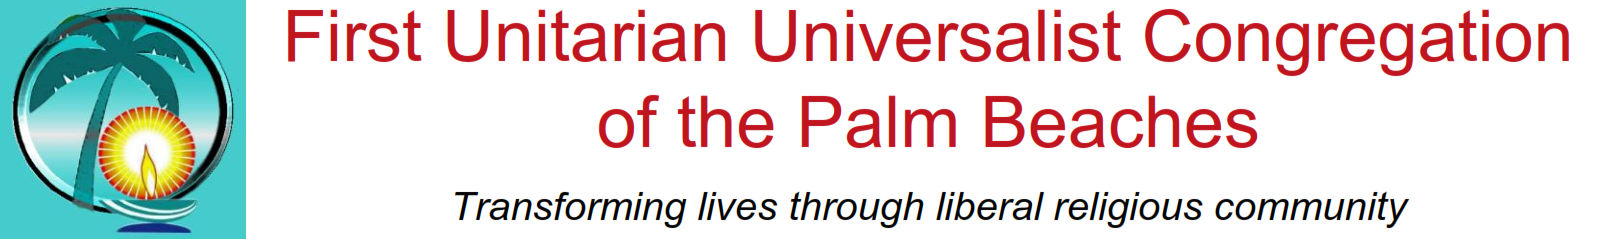 1st UU Congregation of the Palm Beaches Logo